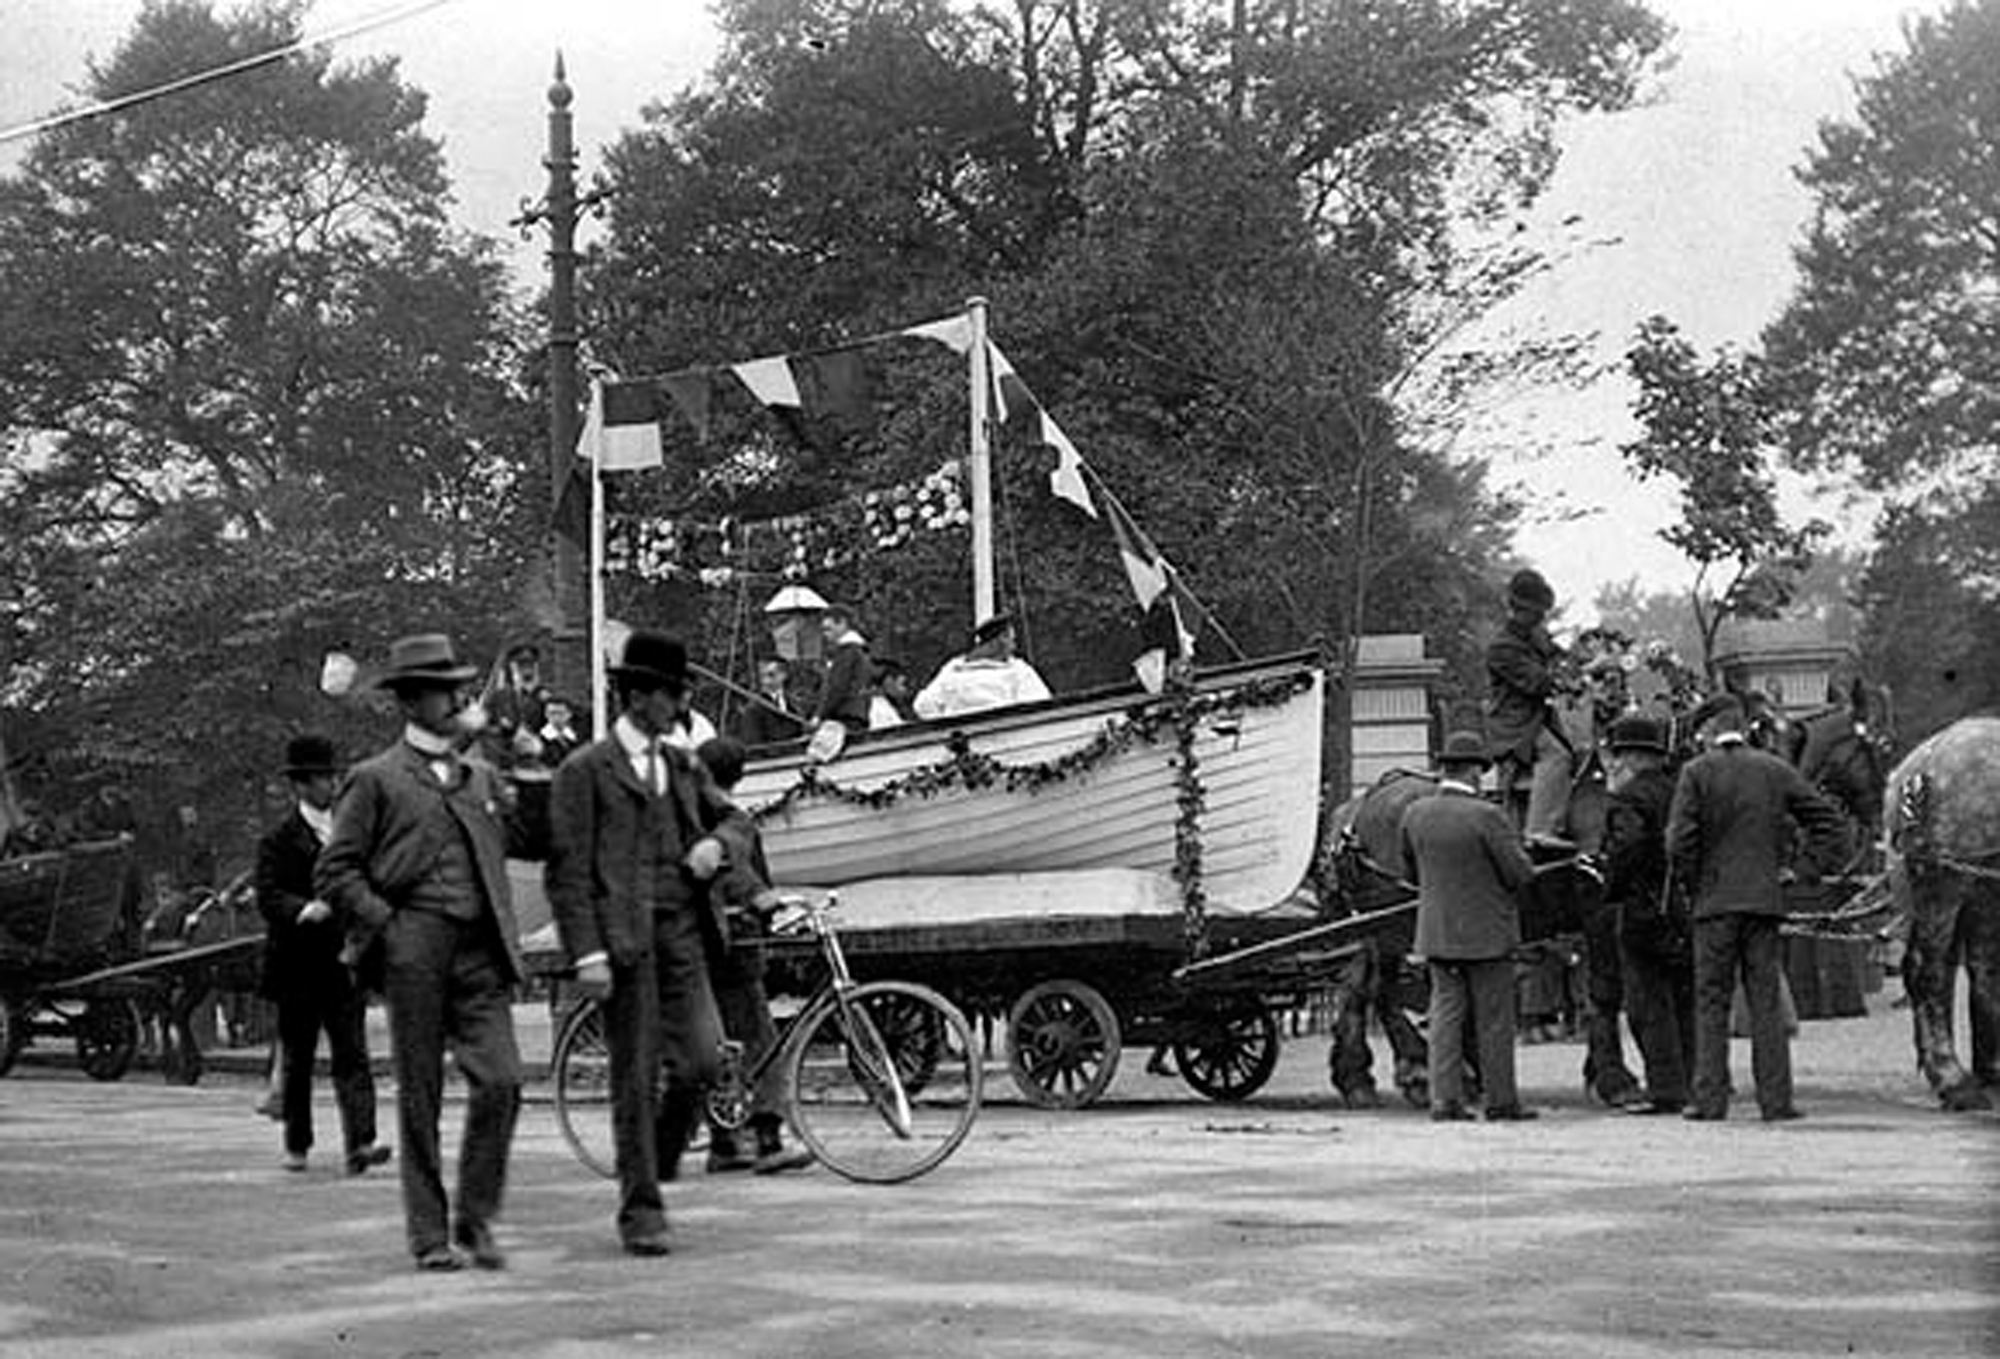 Men with horse-drawn float at St. Stephen's Green